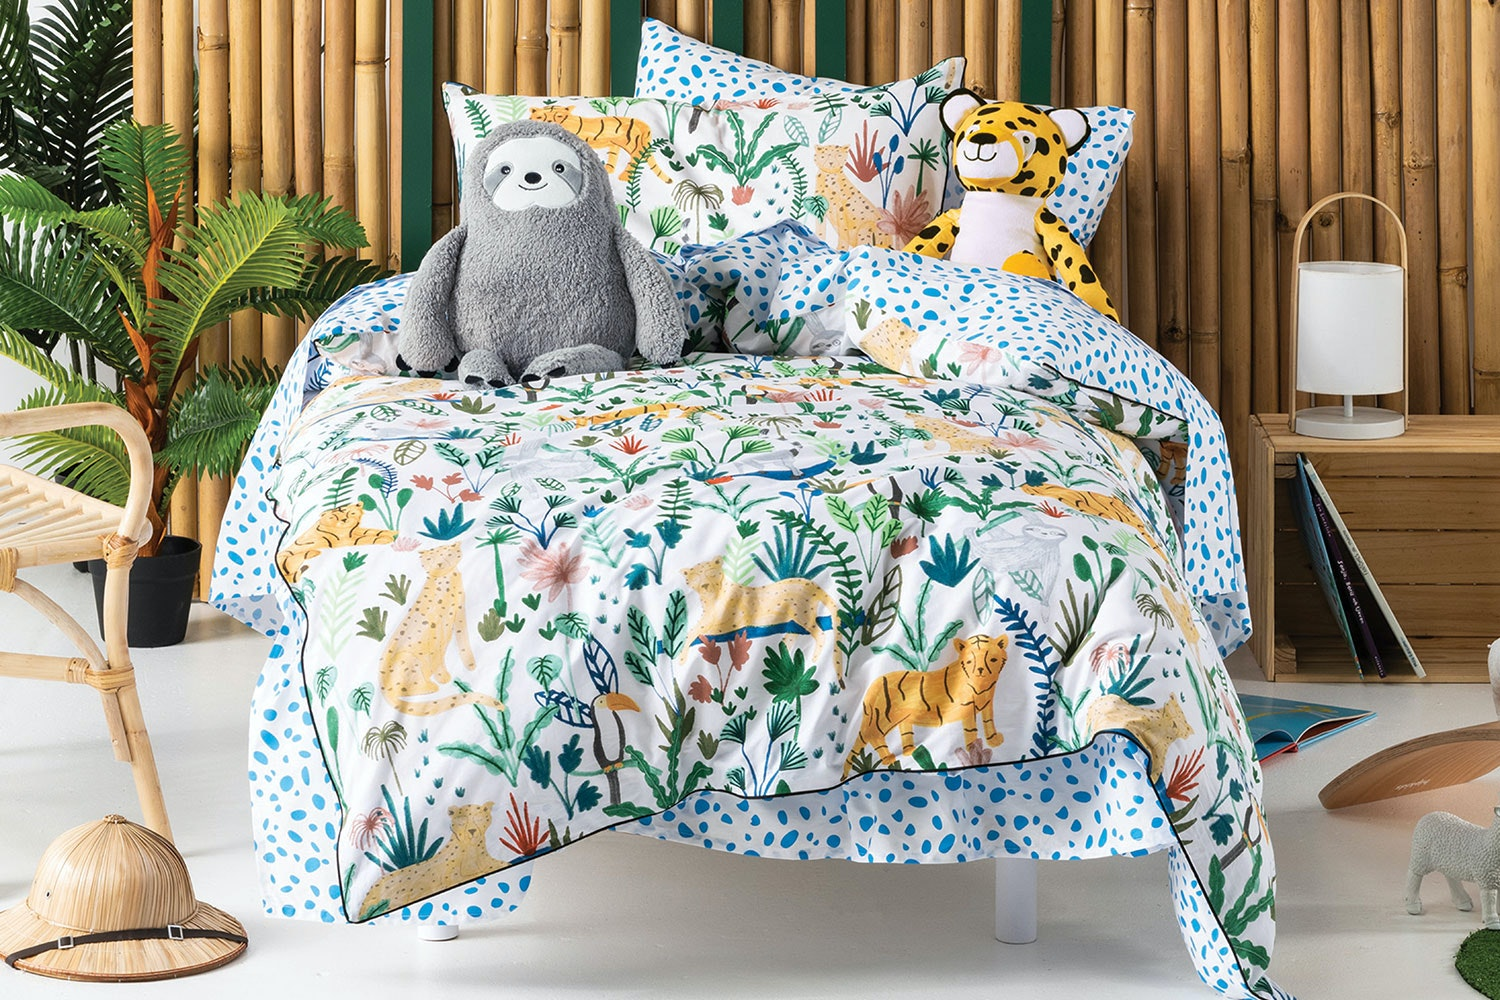 The Wild Jungle Duvet Cover Set By Squiggles Harvey Norman New Zealand